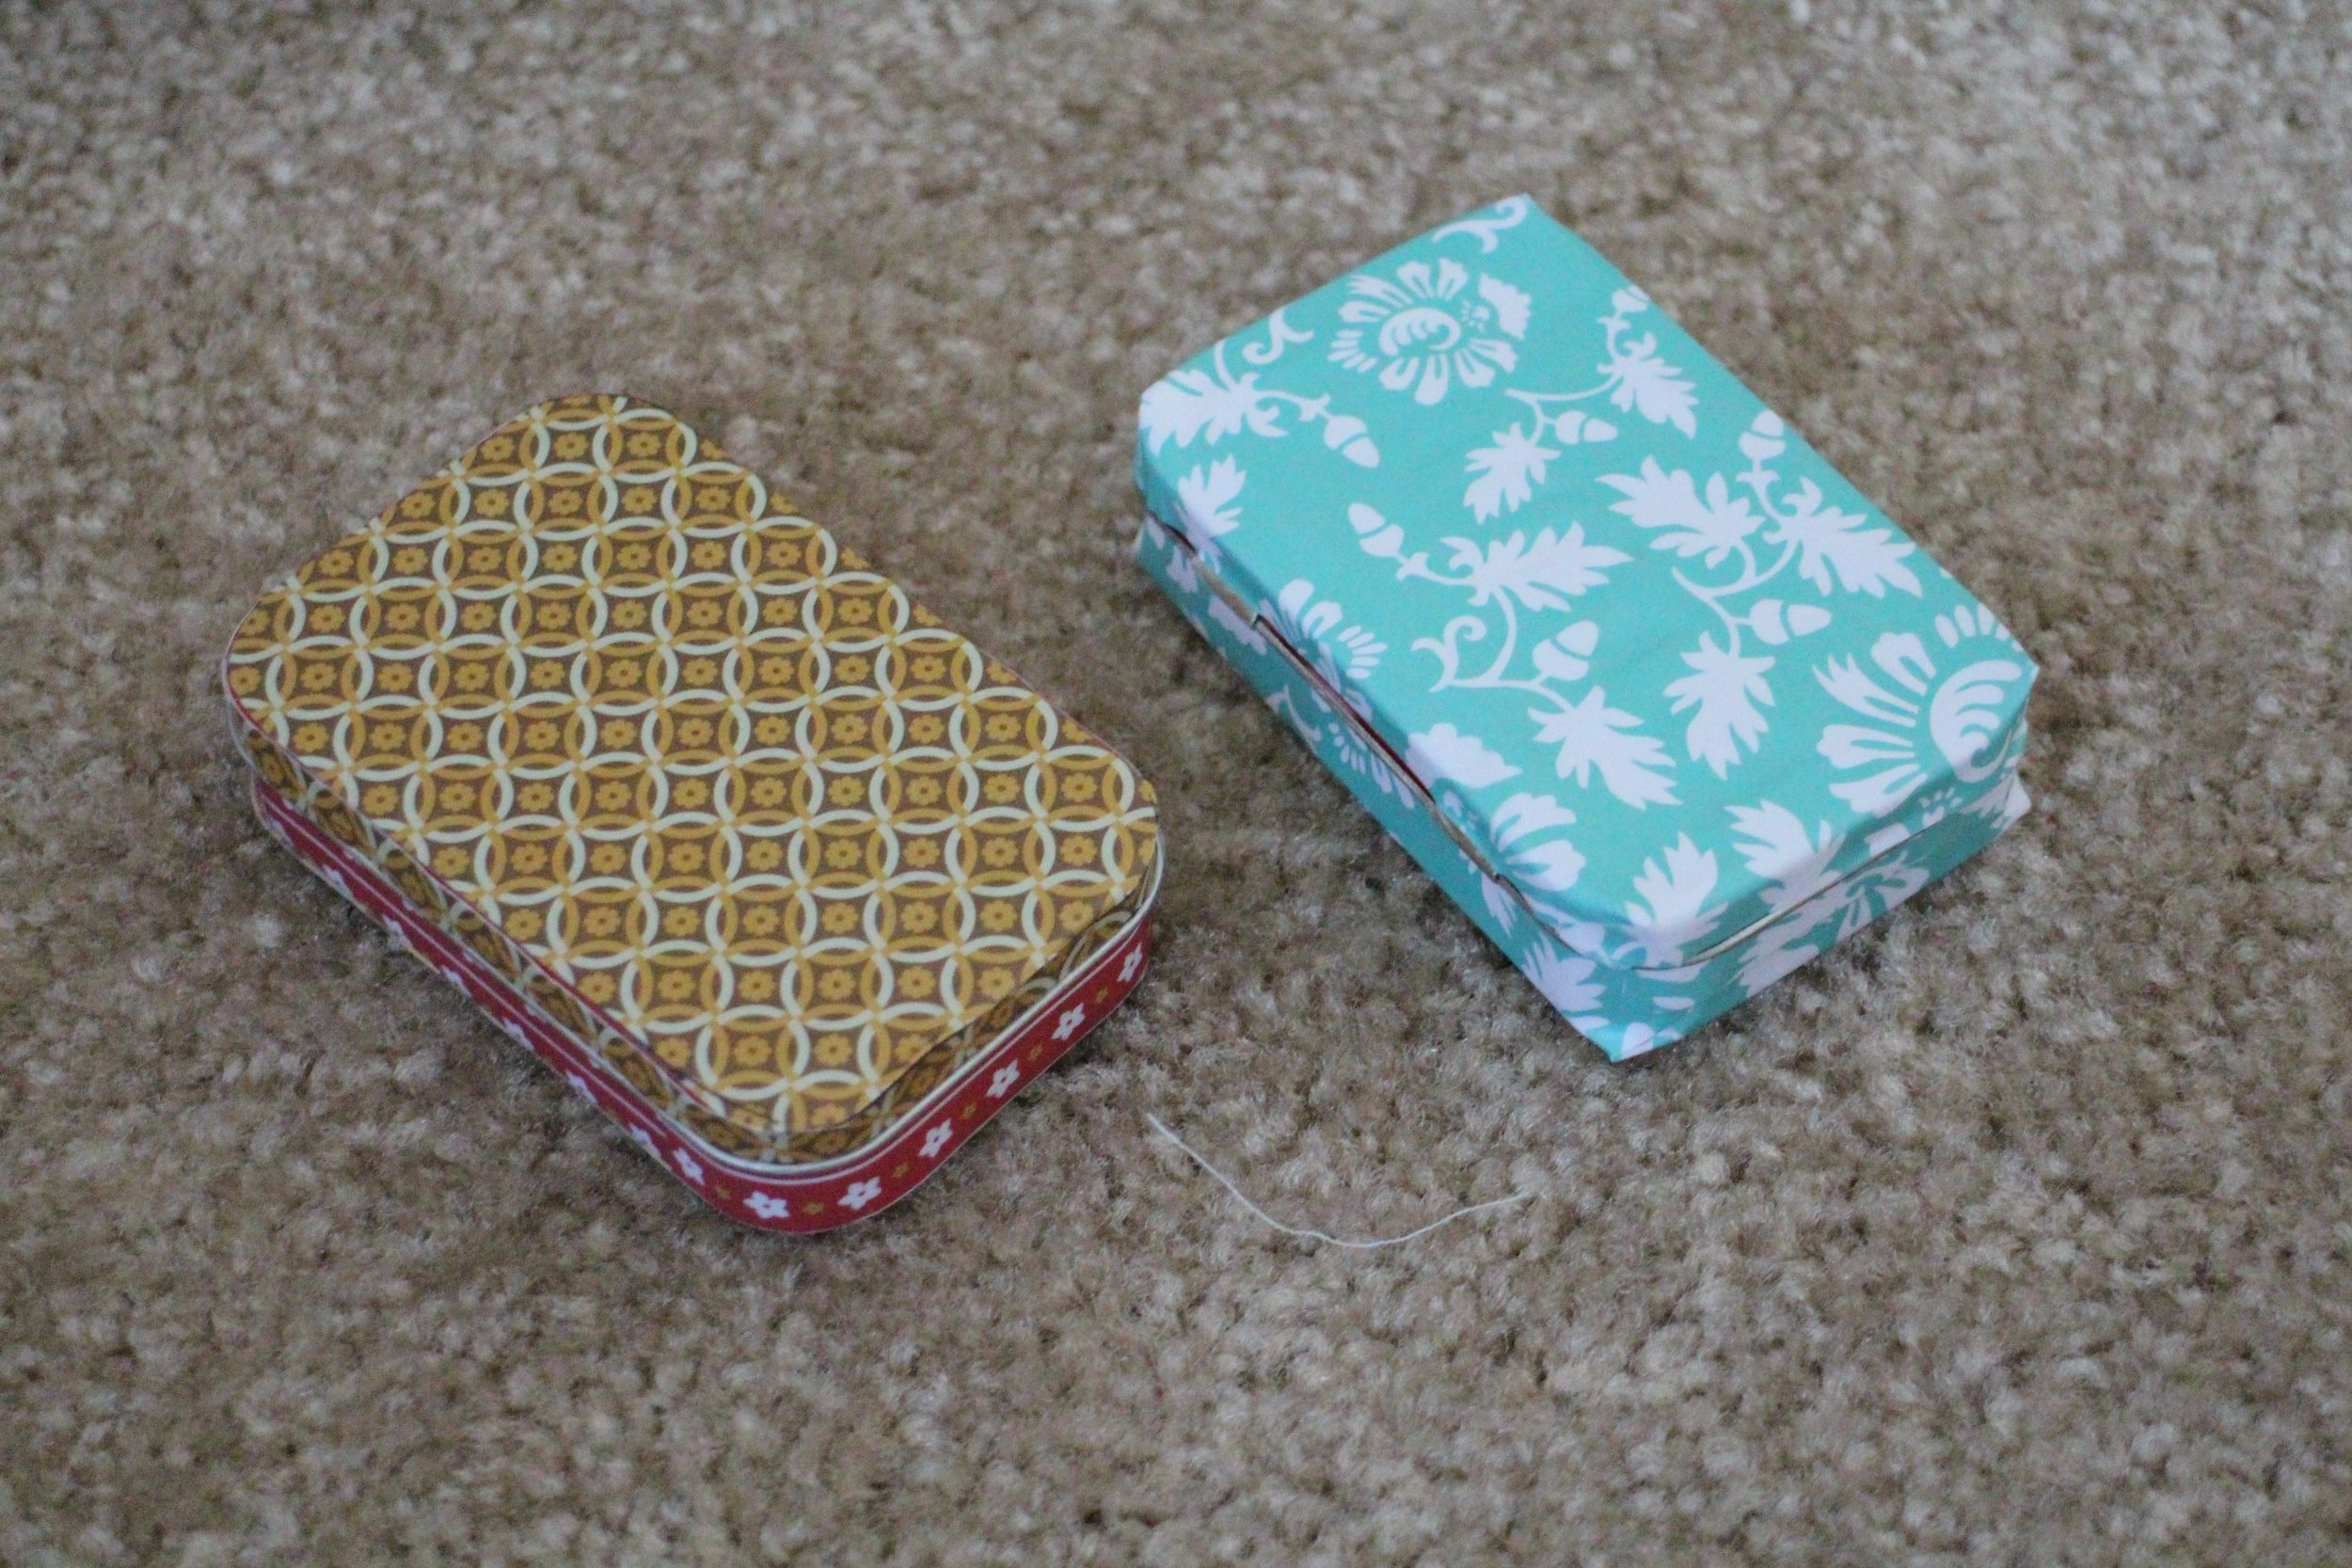 My new card cases!